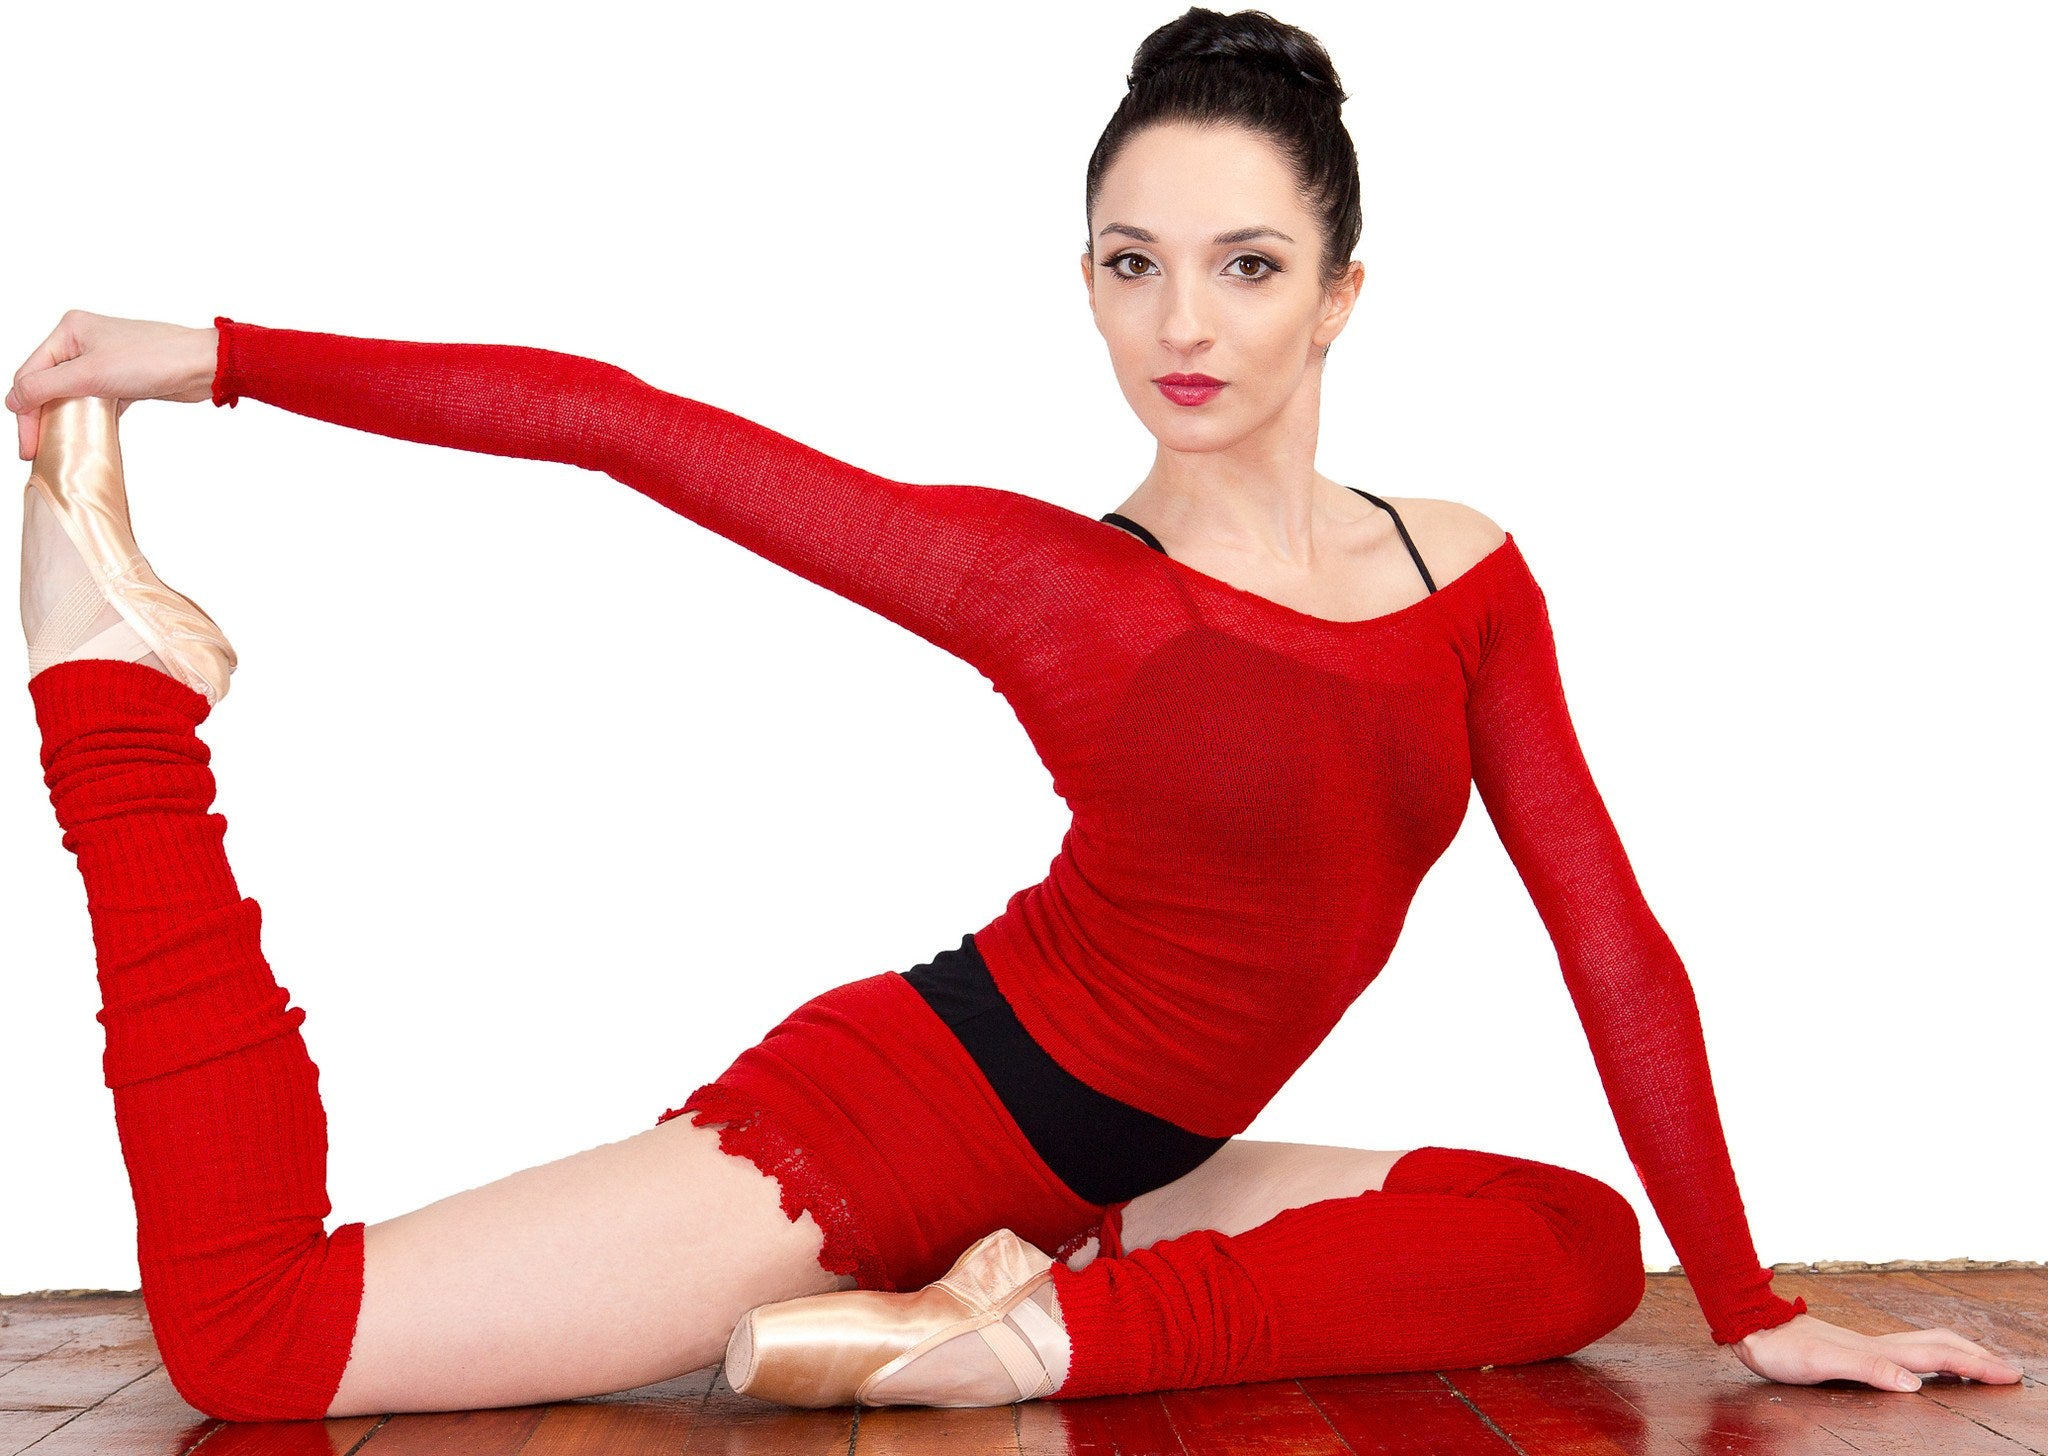 Leg Warmers: Knee High KrinkleSpun Soft Subtle Shine Legwarmers by KD dance New York Made In USA @KDdanceNewYork #MadeInUSA - 8